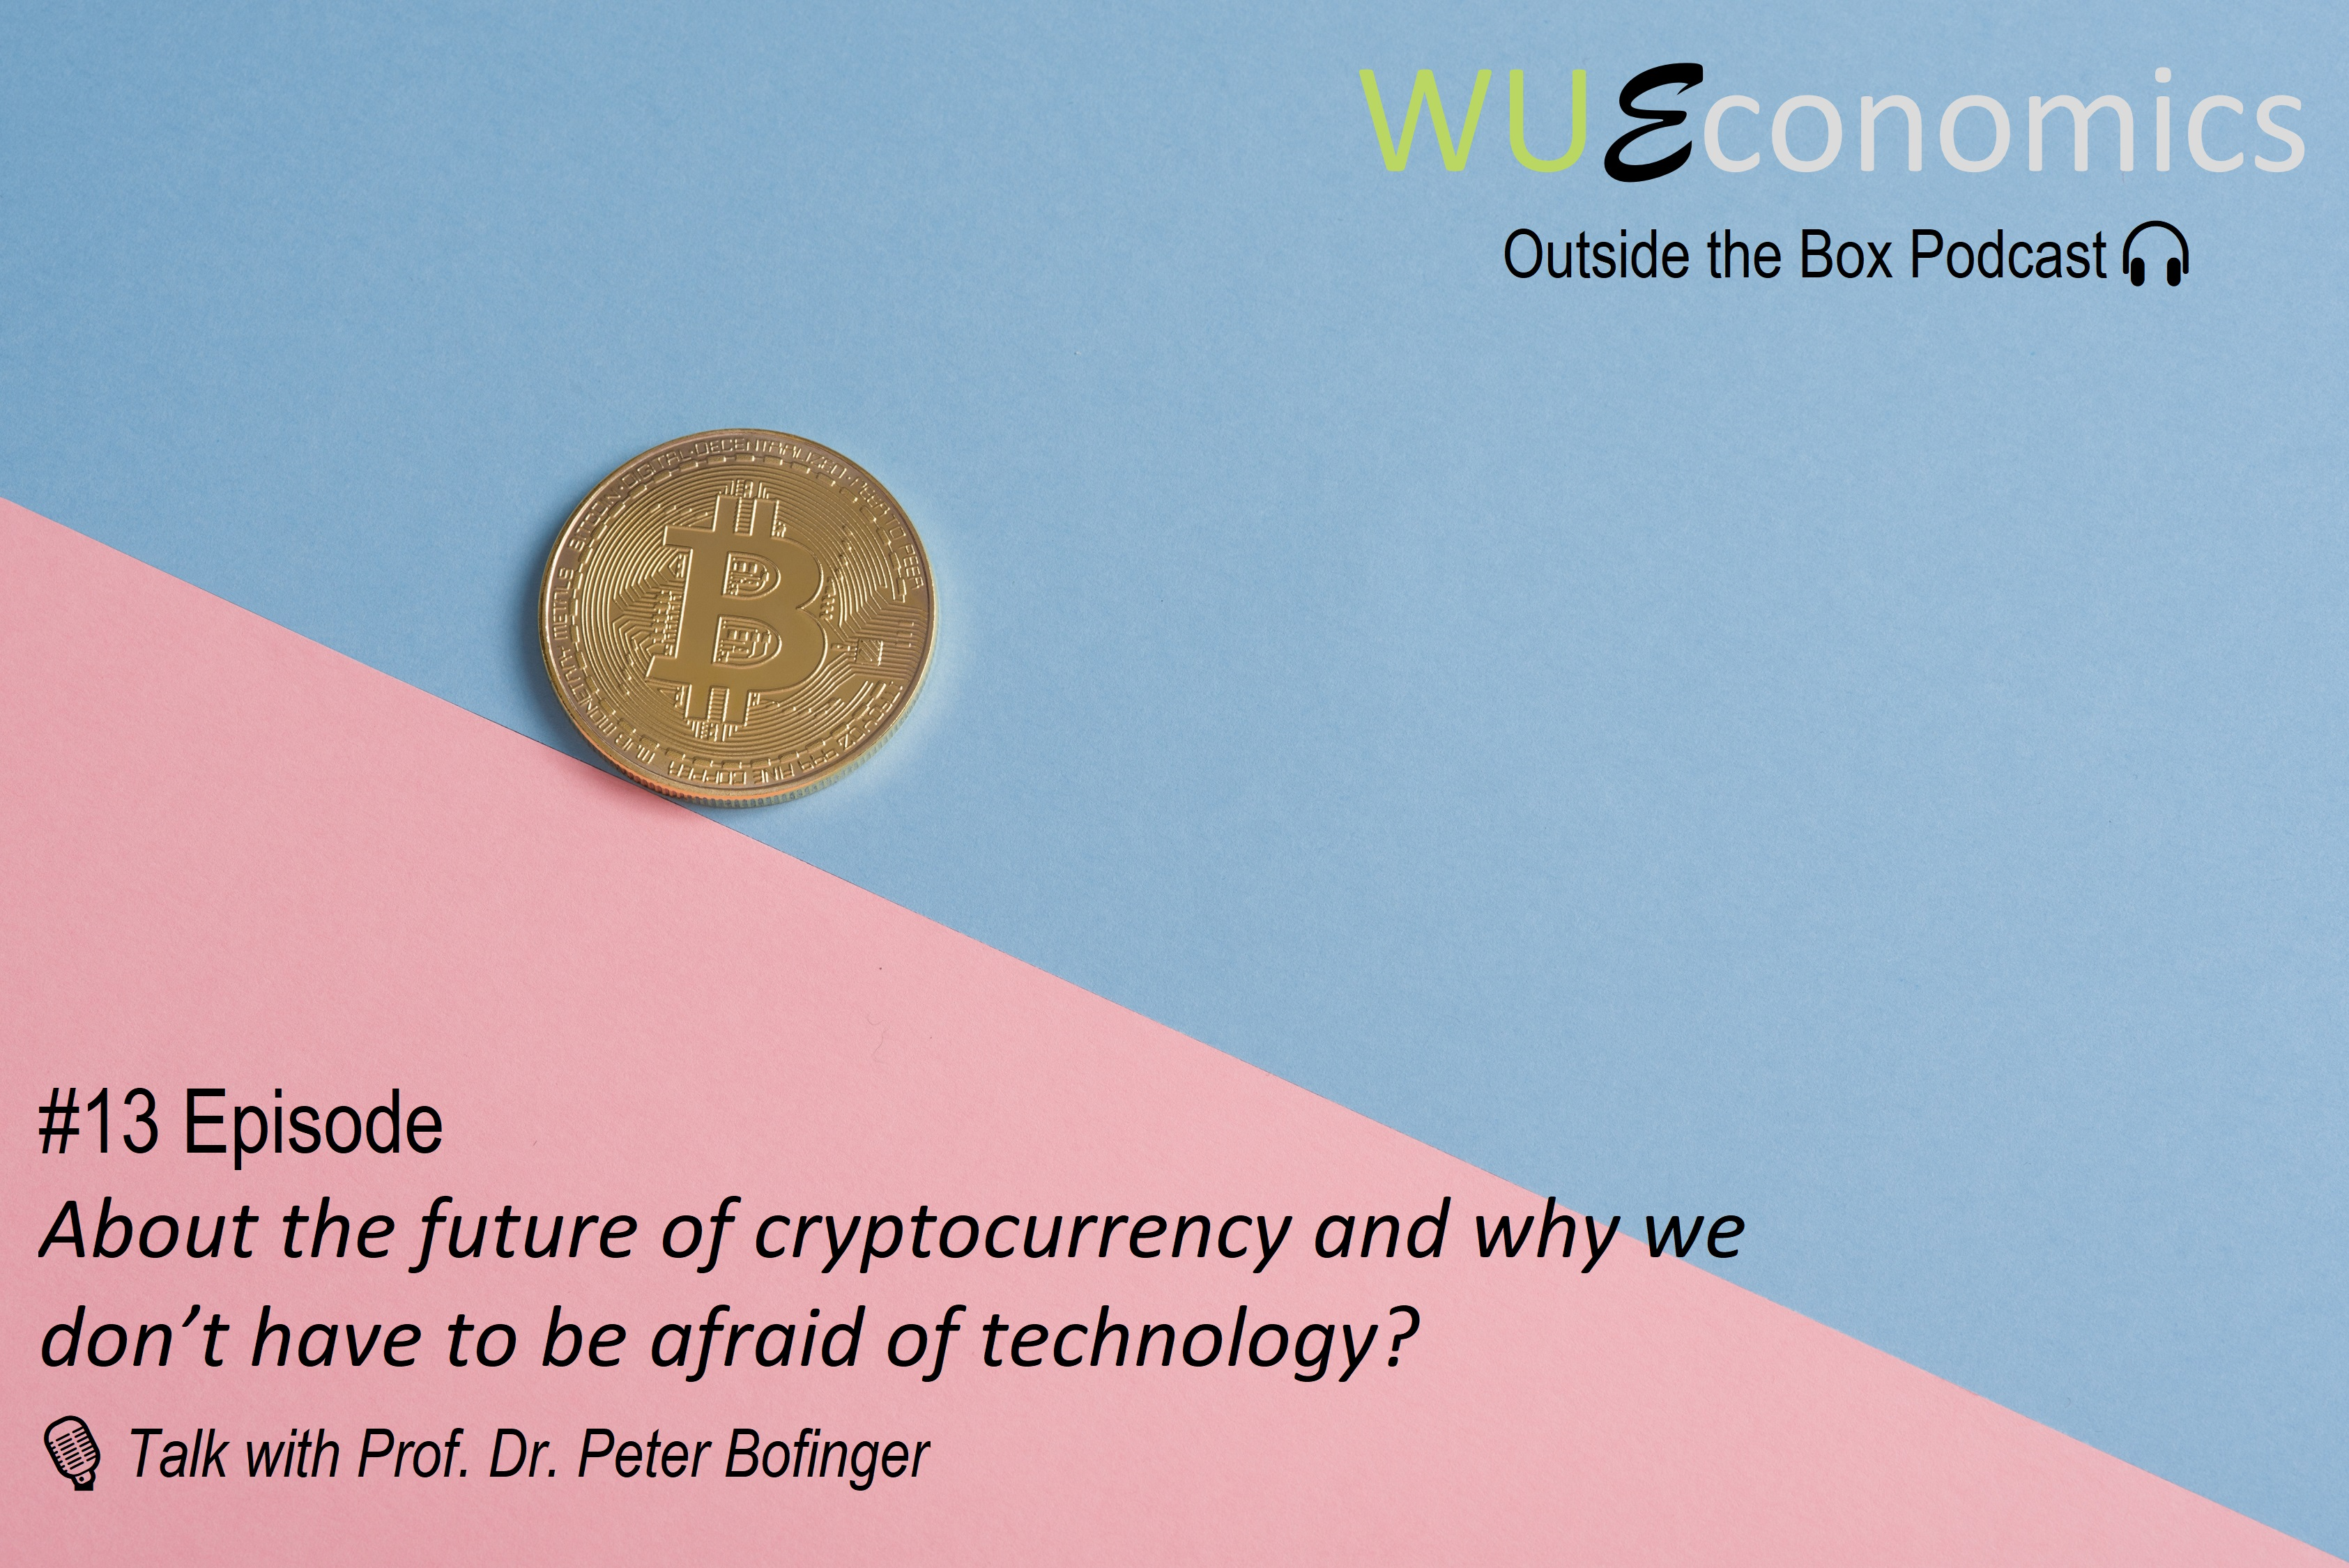 #13 Episode – About the future of cryptocurrency and why we don't have to be afraid of technology?